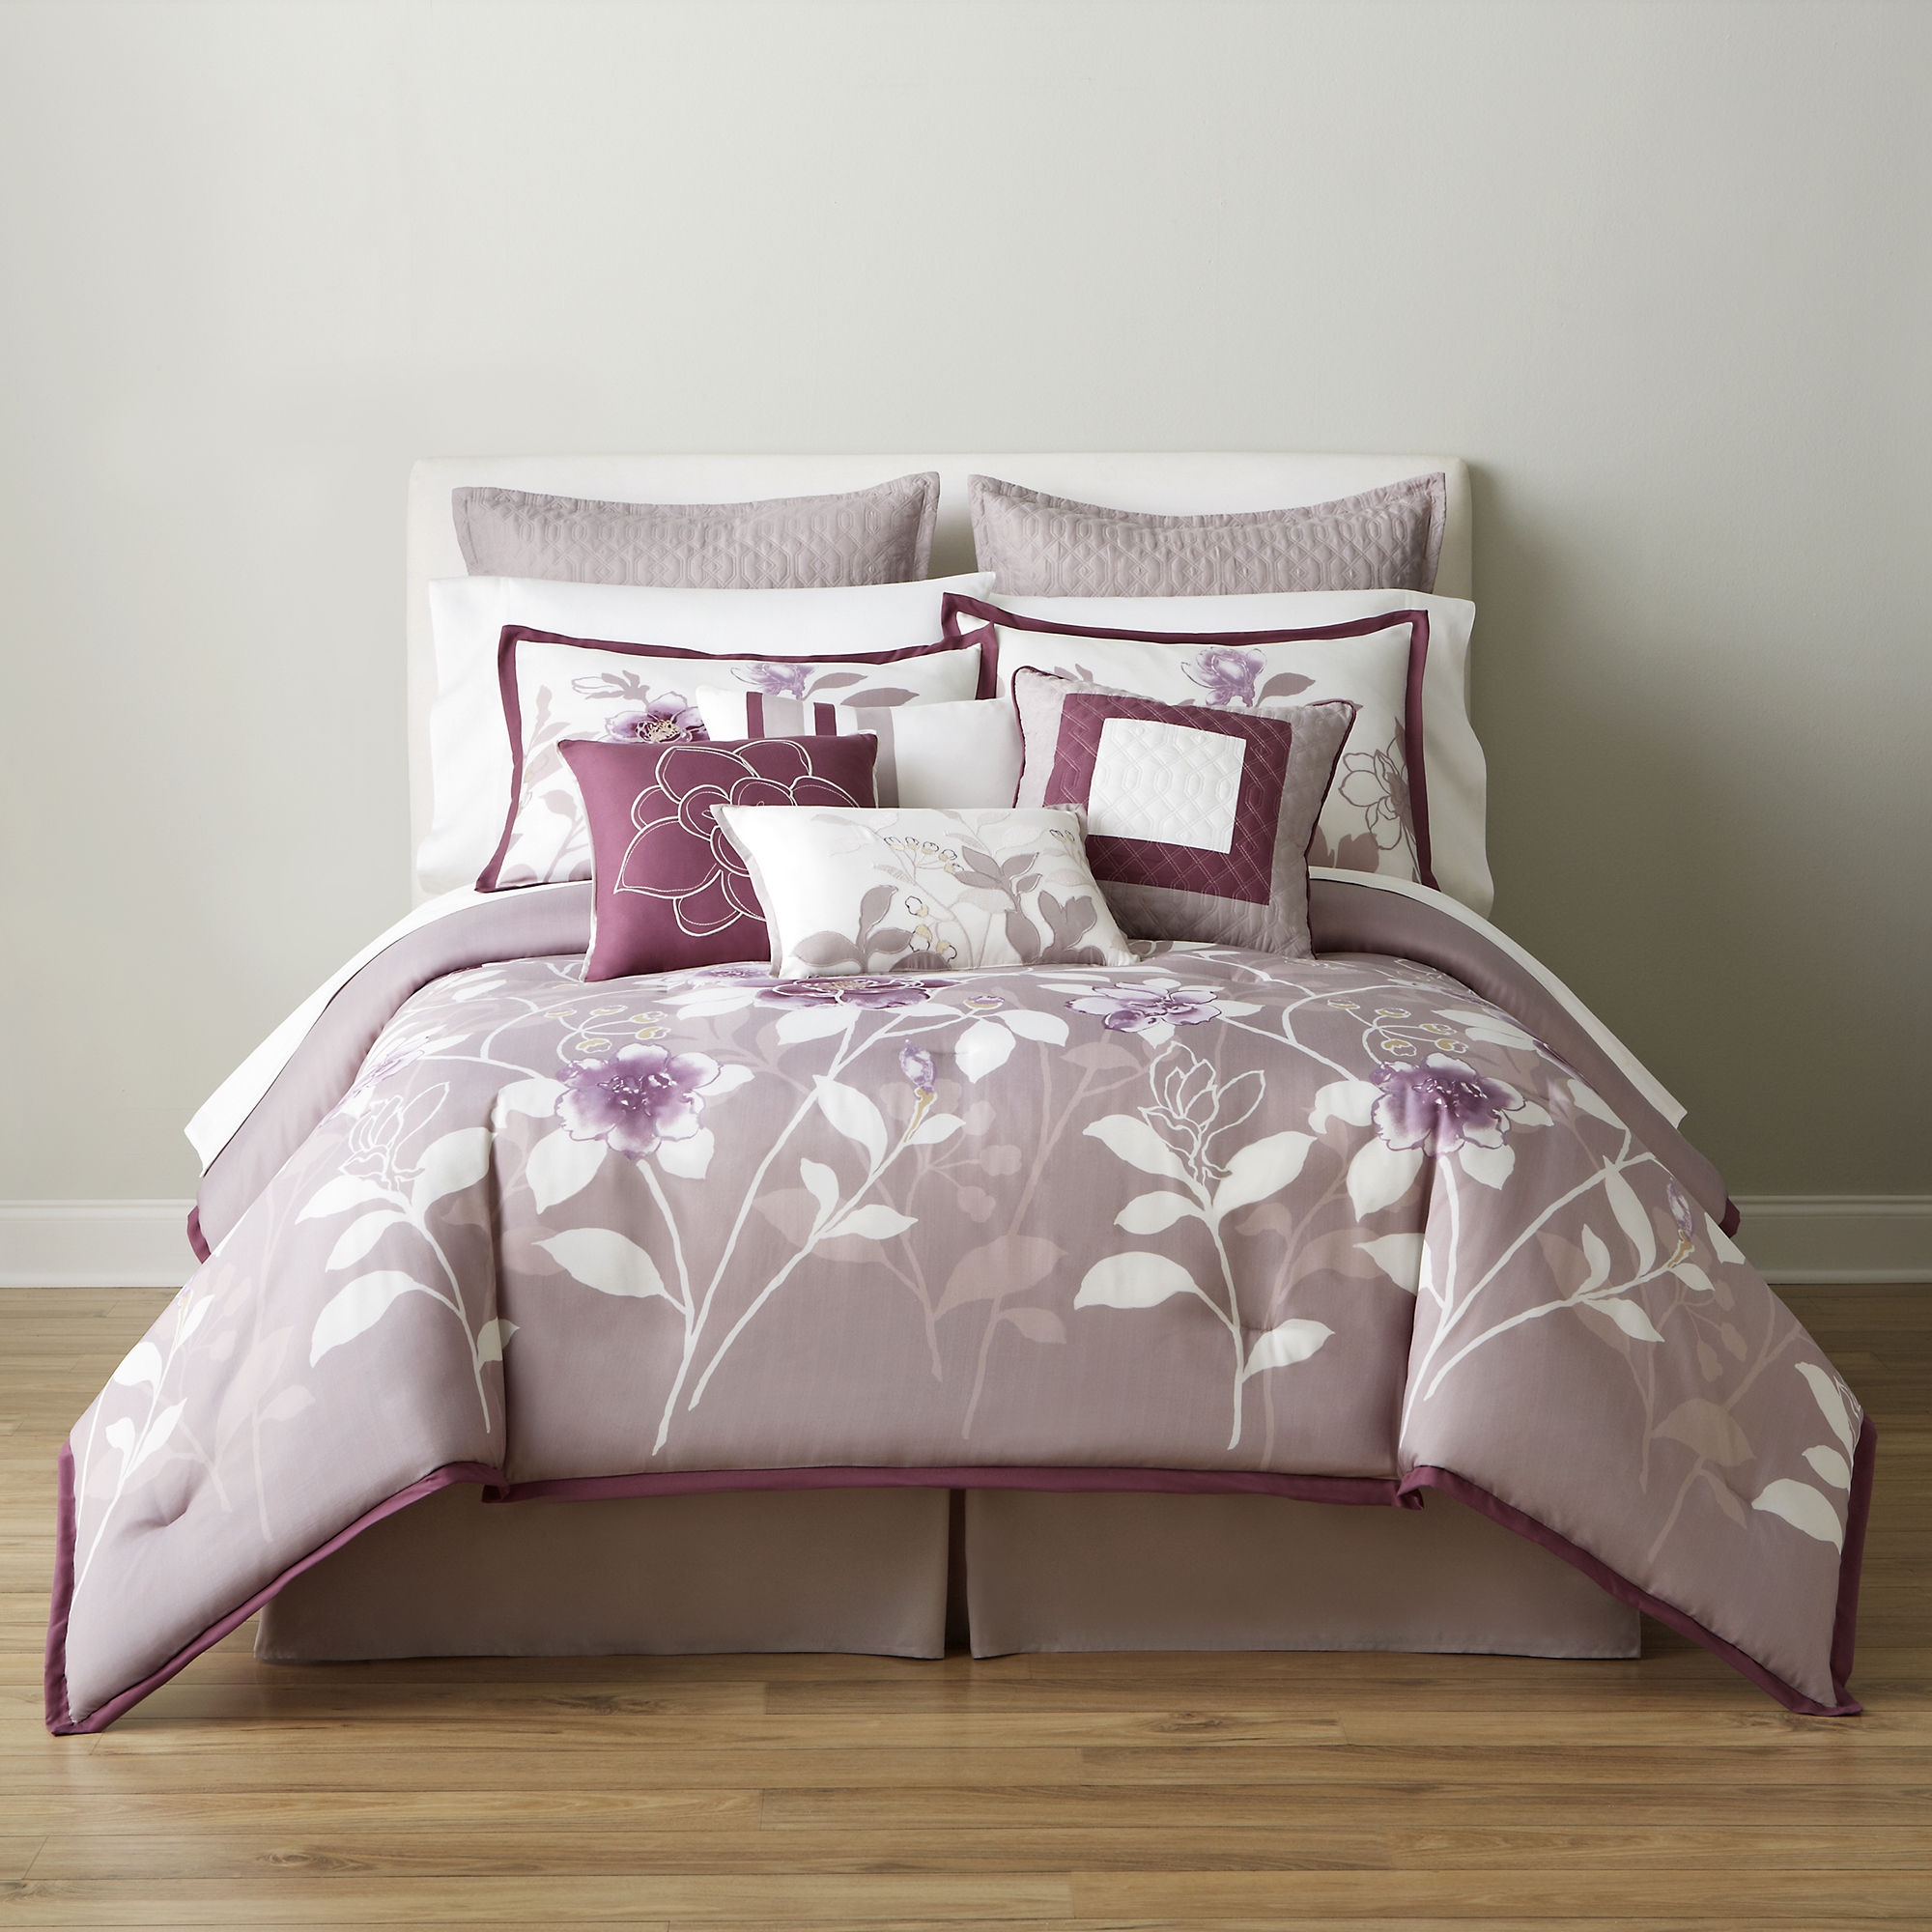 Shop Comforters and top home decor at great value at eskortlarankara.ga, and buy them at your local At Home stores. Find top value in At Home's Comforter collection and on furniture, art, decor and other products for the home at eskortlarankara.ga